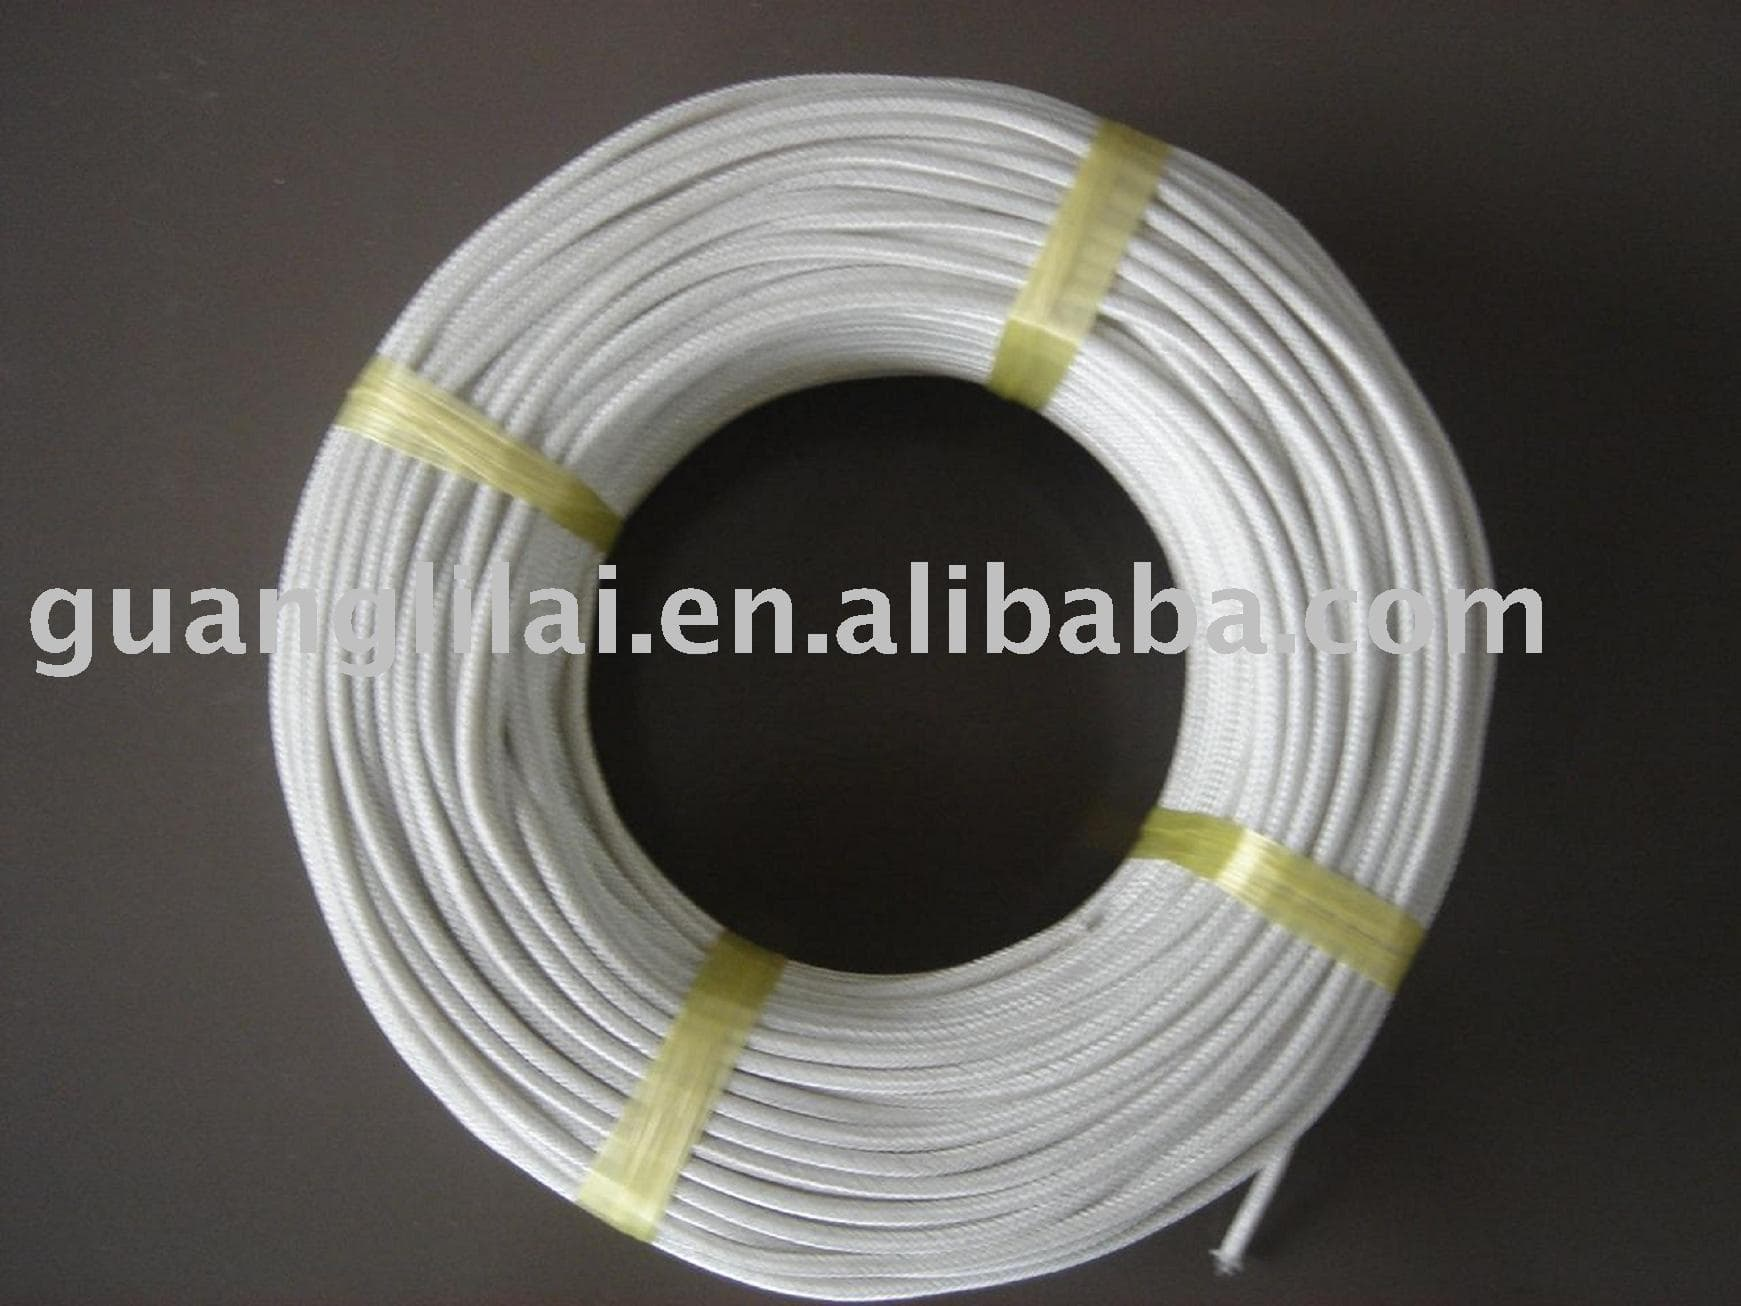 Heating Wire | Electronicshome Heaterselectric Heatersother Heaters Tradekorea